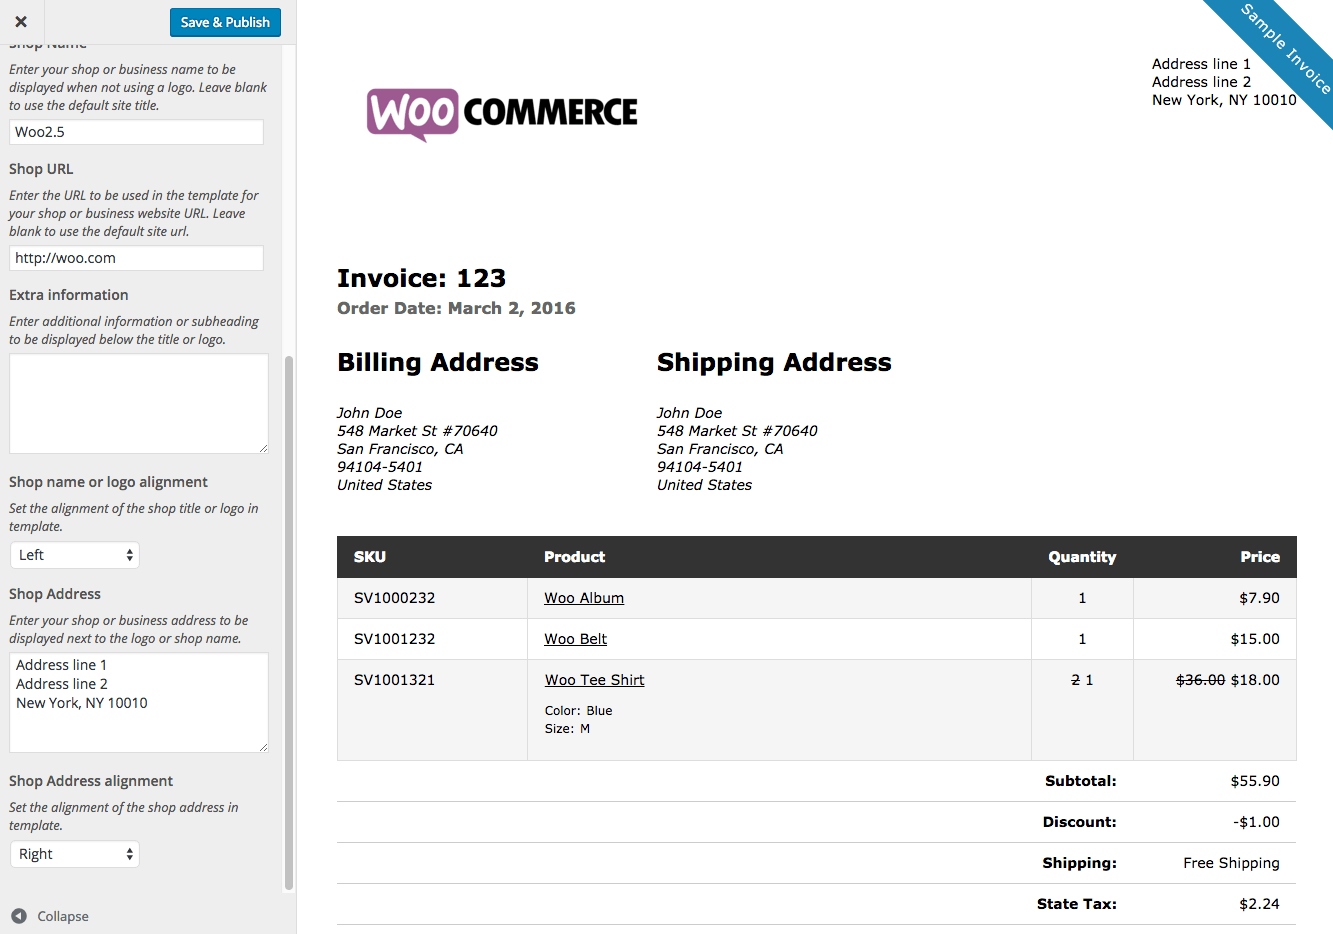 Coachoutletonlineplusus  Unique Print Invoices Amp Packing Lists  Woocommerce With Gorgeous Woocommerce Print Invoices  Packing Lists Customizer With Endearing Invoice Template Psd Also Estimate Invoice Template In Addition Fob Invoice And Is An Invoice A Bill As Well As My Invoice Dfas Additionally Tax Invoice Template From Woocommercecom With Coachoutletonlineplusus  Gorgeous Print Invoices Amp Packing Lists  Woocommerce With Endearing Woocommerce Print Invoices  Packing Lists Customizer And Unique Invoice Template Psd Also Estimate Invoice Template In Addition Fob Invoice From Woocommercecom